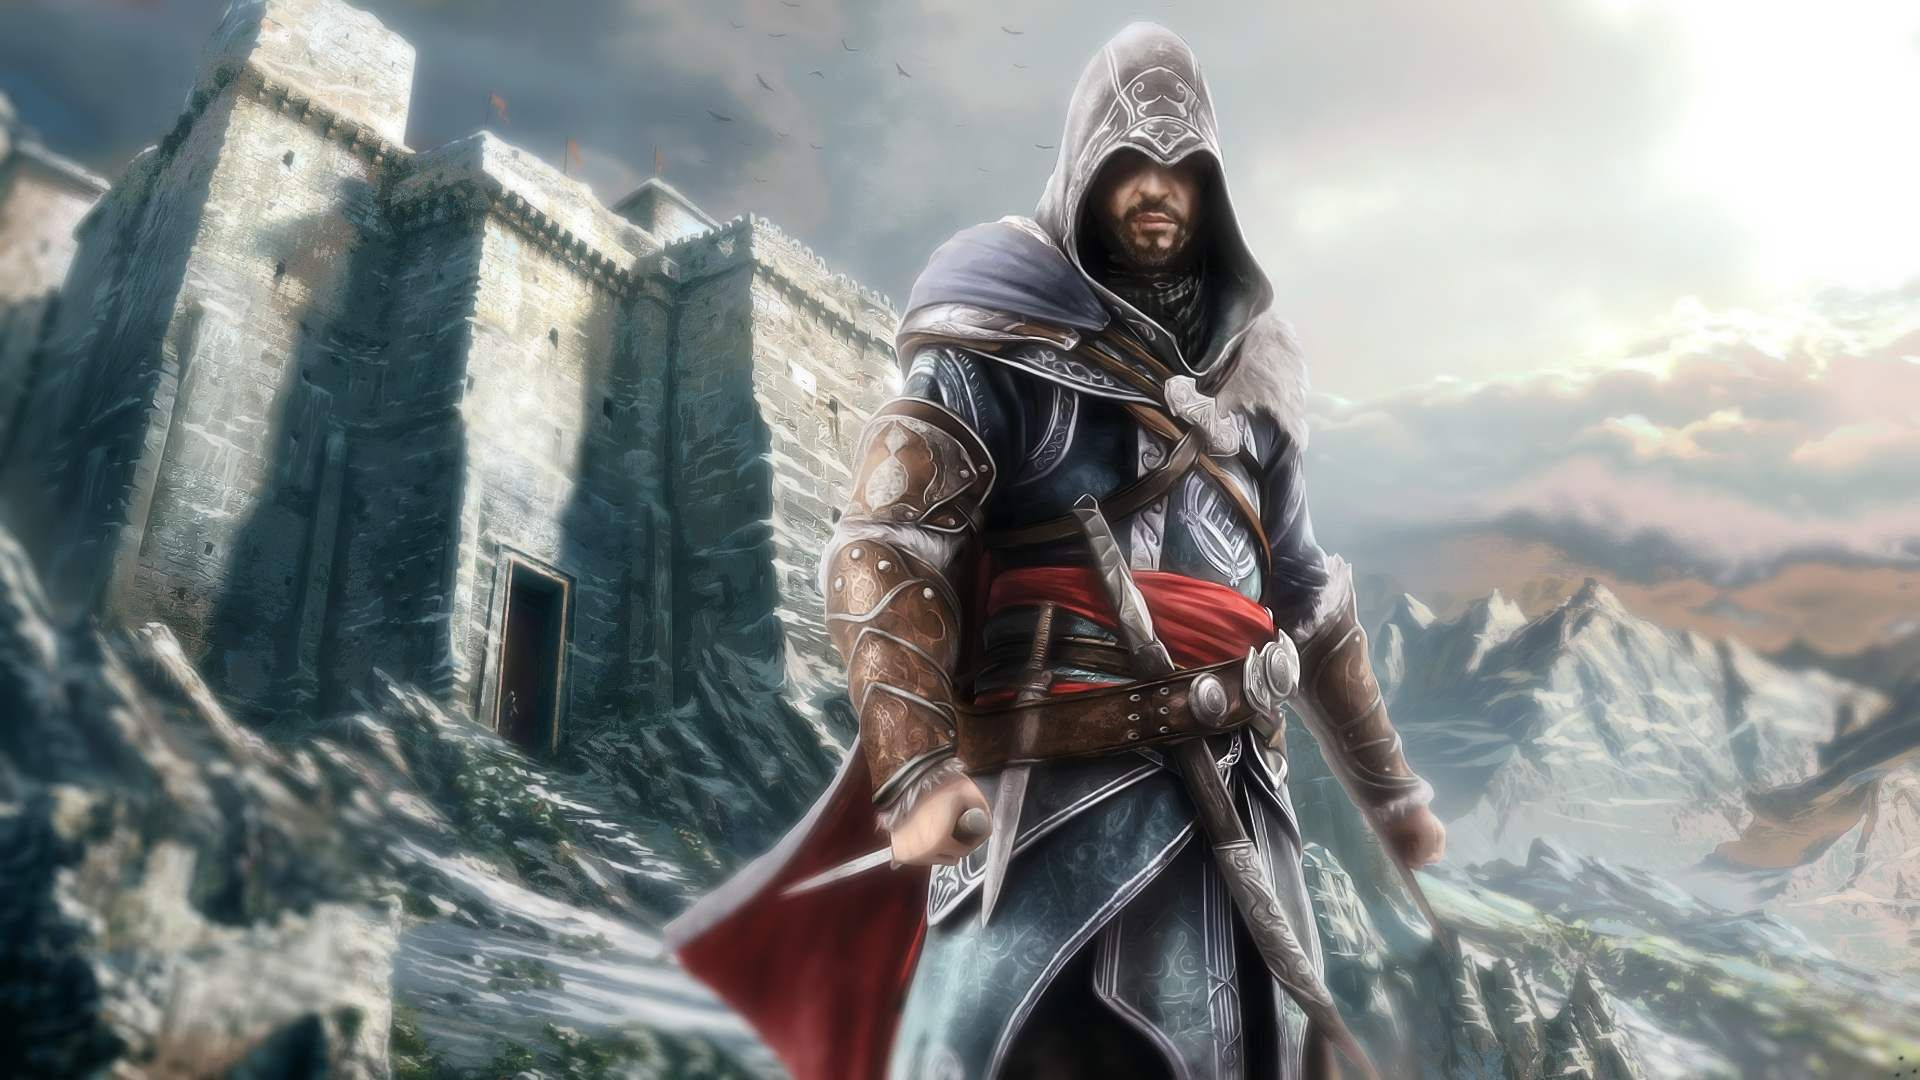 Cool Assassin S Creed Drawings Assassin S Creed Revelations